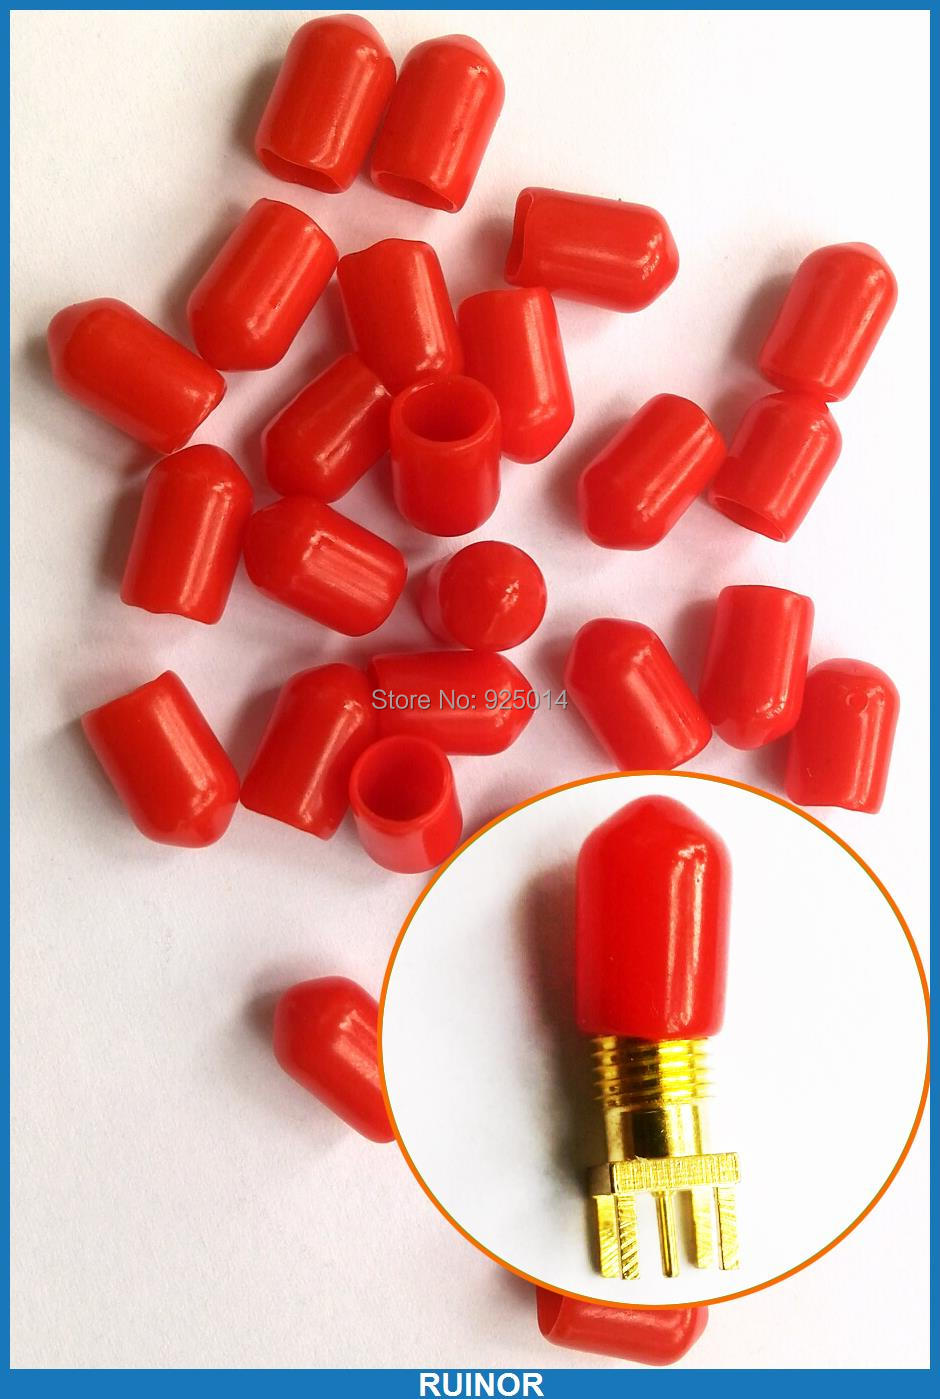 10Diameter 6mm length 10mm Plastic covers Dust cap Red protective case RF-SMA Female connector + - RUINOR store